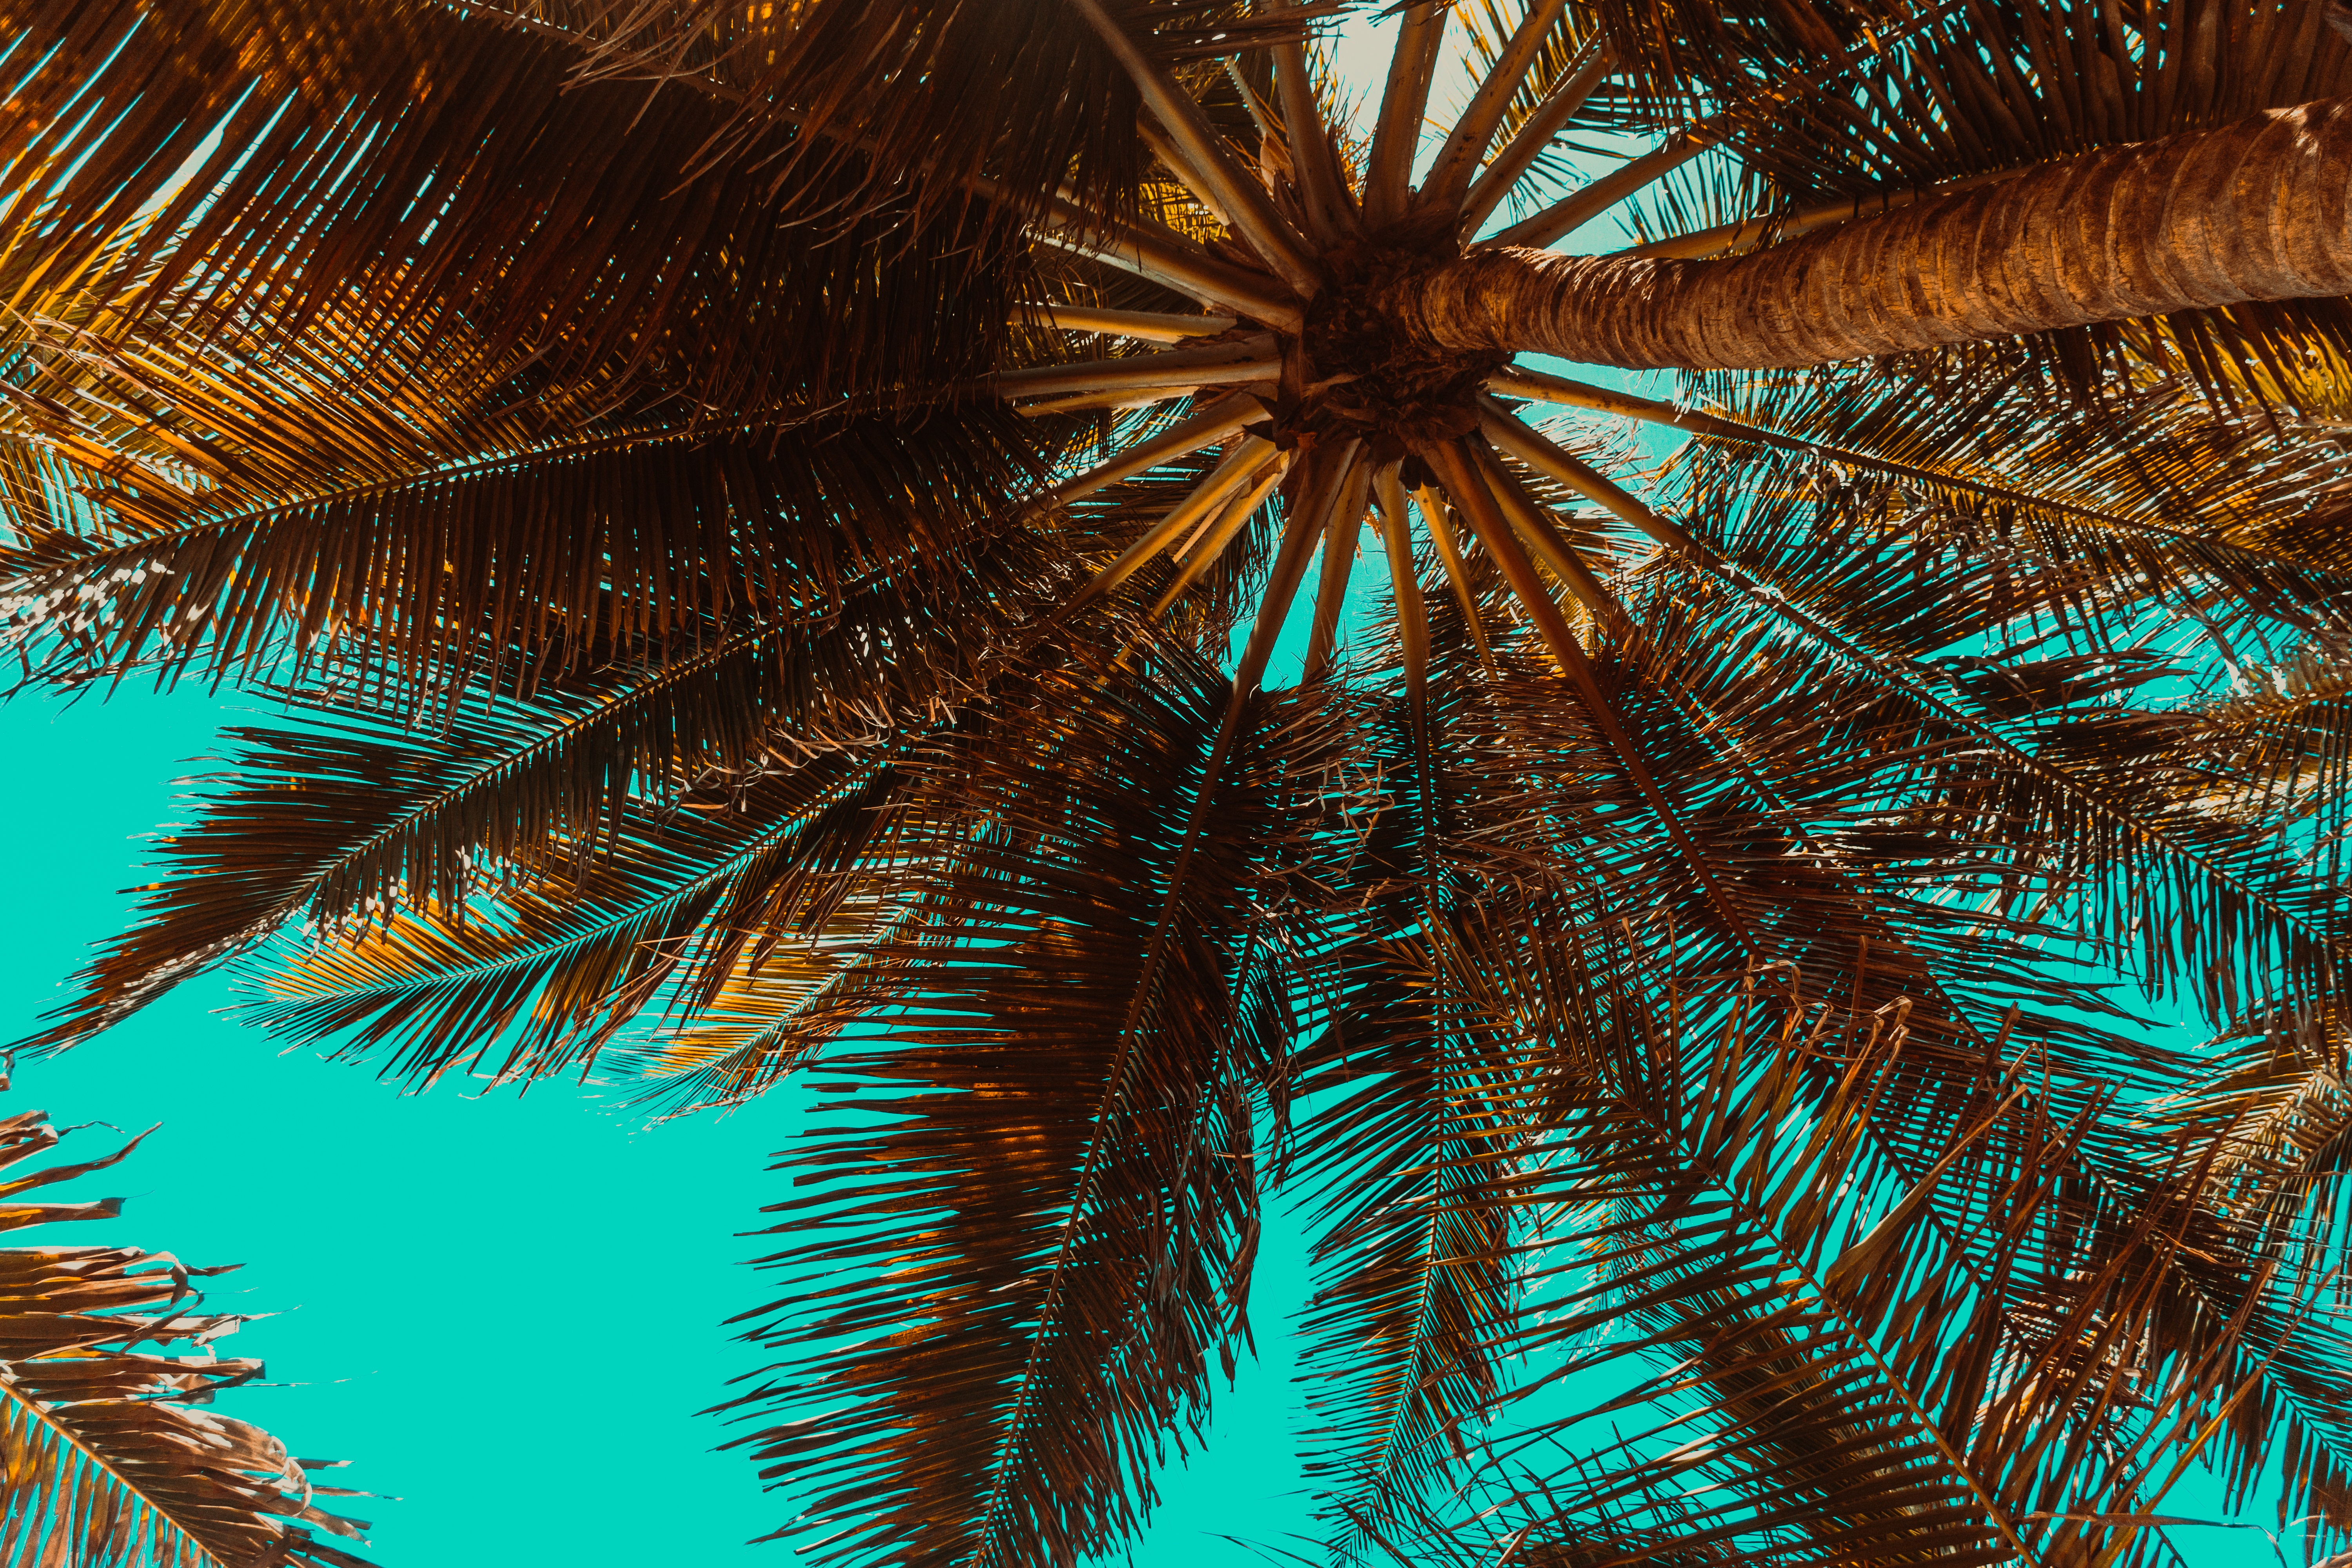 94788 download wallpaper Nature, Palm, Branches, Wood, Tree, Tropics, Bottom View screensavers and pictures for free